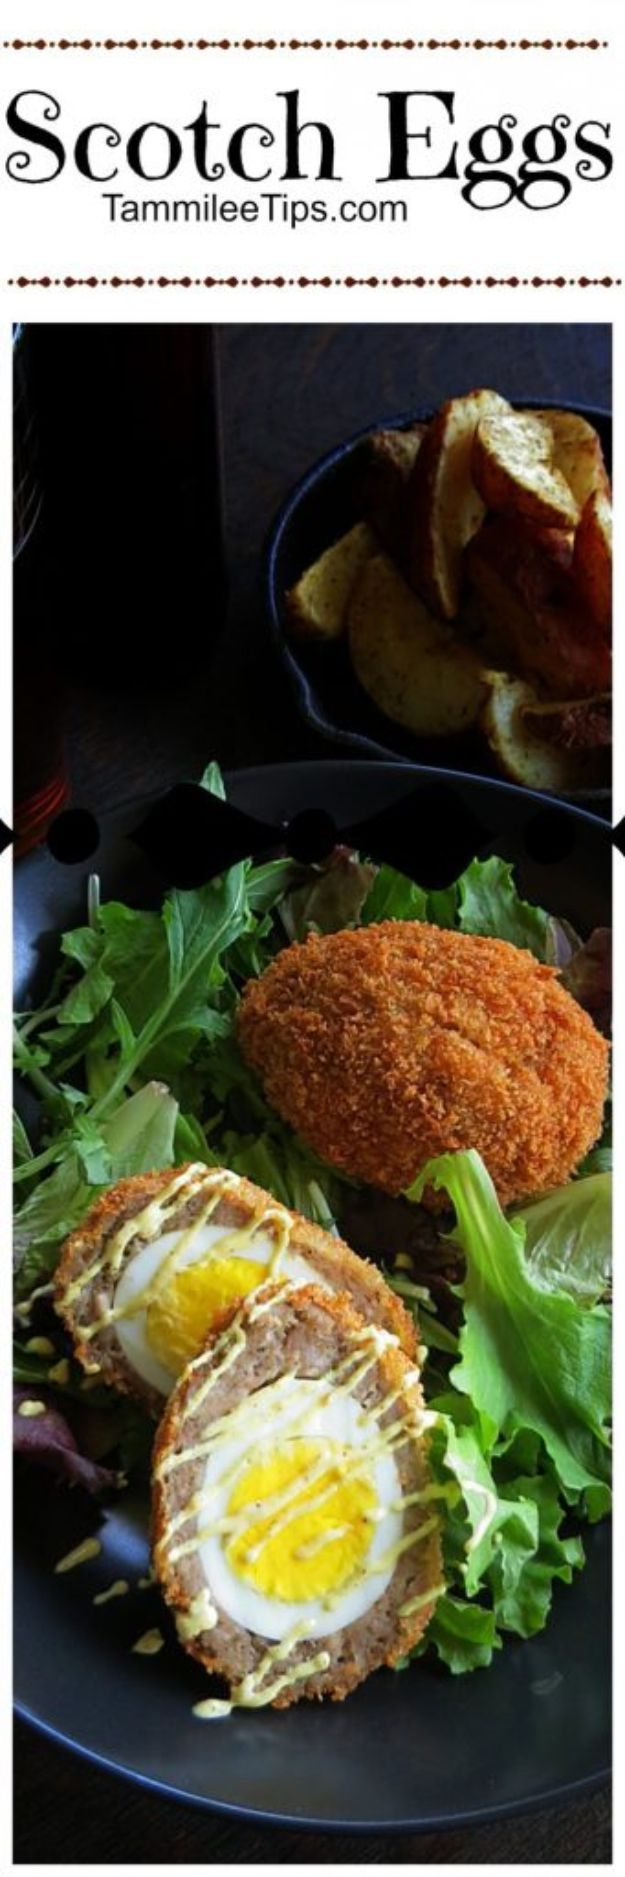 Best Brunch Recipes - Scotch Eggs - Eggs, Pancakes, Waffles, Casseroles, Vegetable Dishes and Side, Potato Recipe Ideas for Brunches - Serve A Crowd and Family with the versions of Eggs Benedict, Mimosas, Muffins and Pastries, Desserts - Make Ahead , Slow Cooler and Healthy Casserole Recipes #brunch #breakfast #recipes